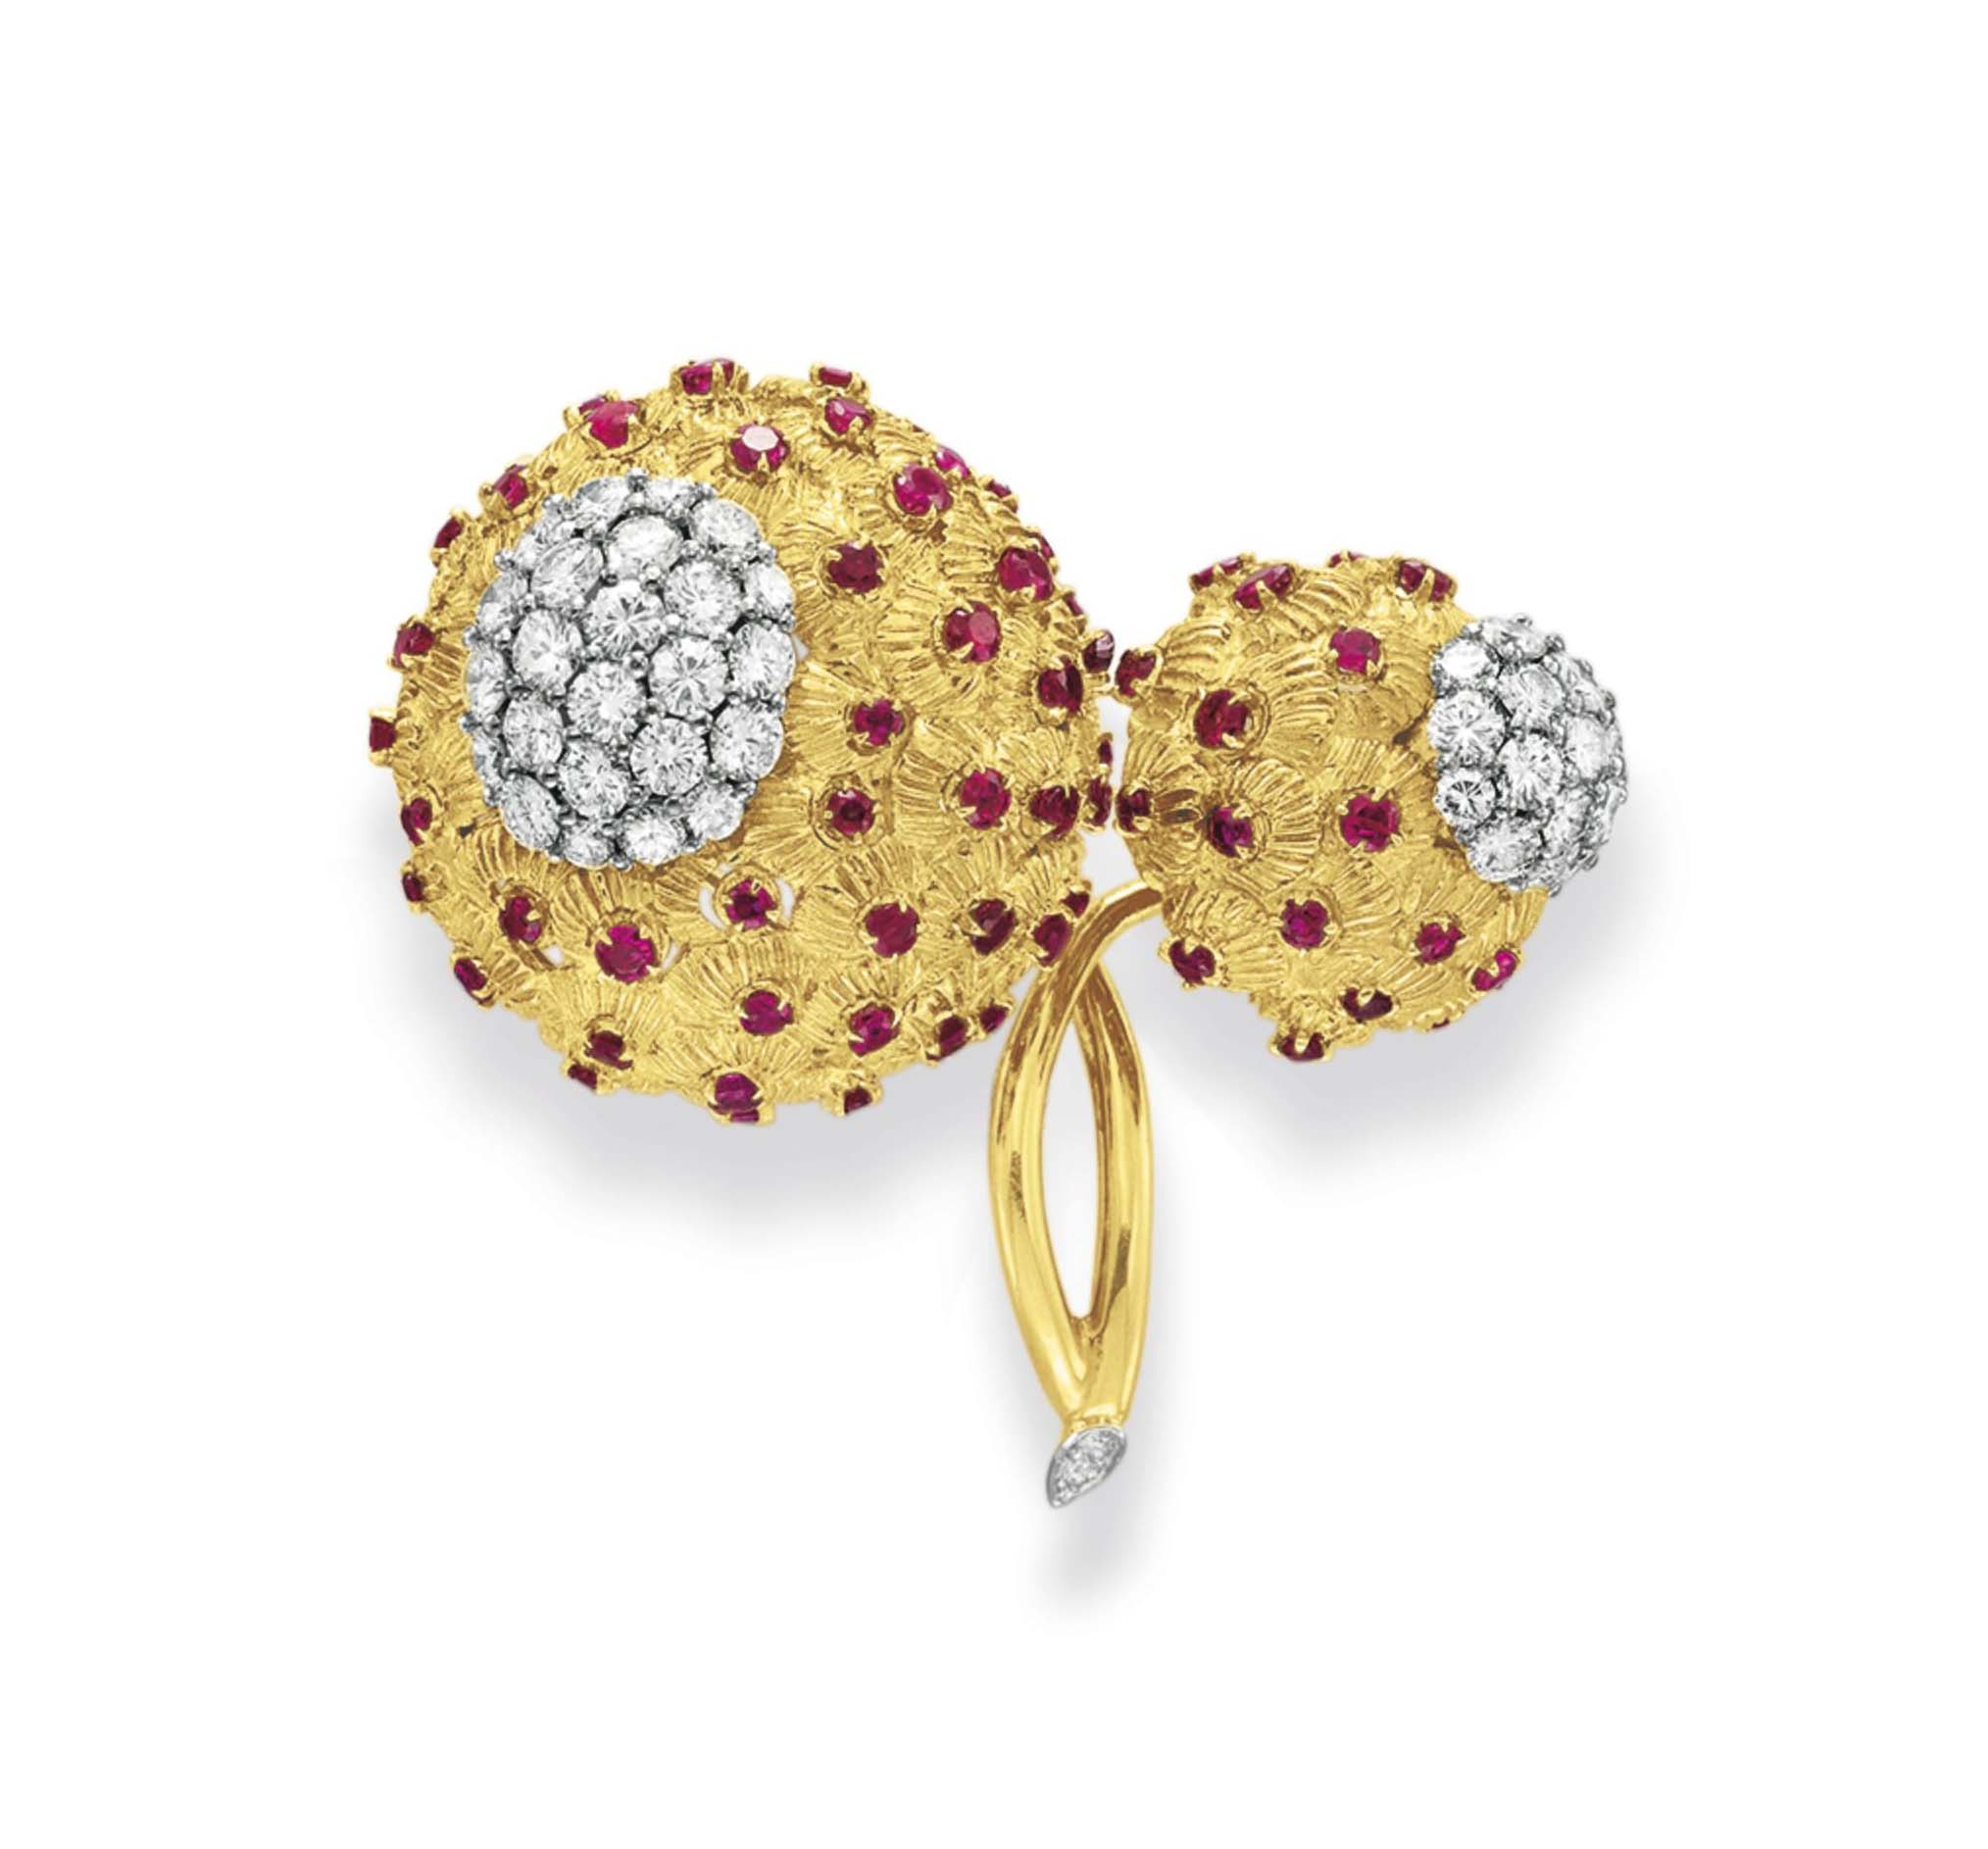 A DIAMOND, RUBY AND GOLD FLOWER BROOCH